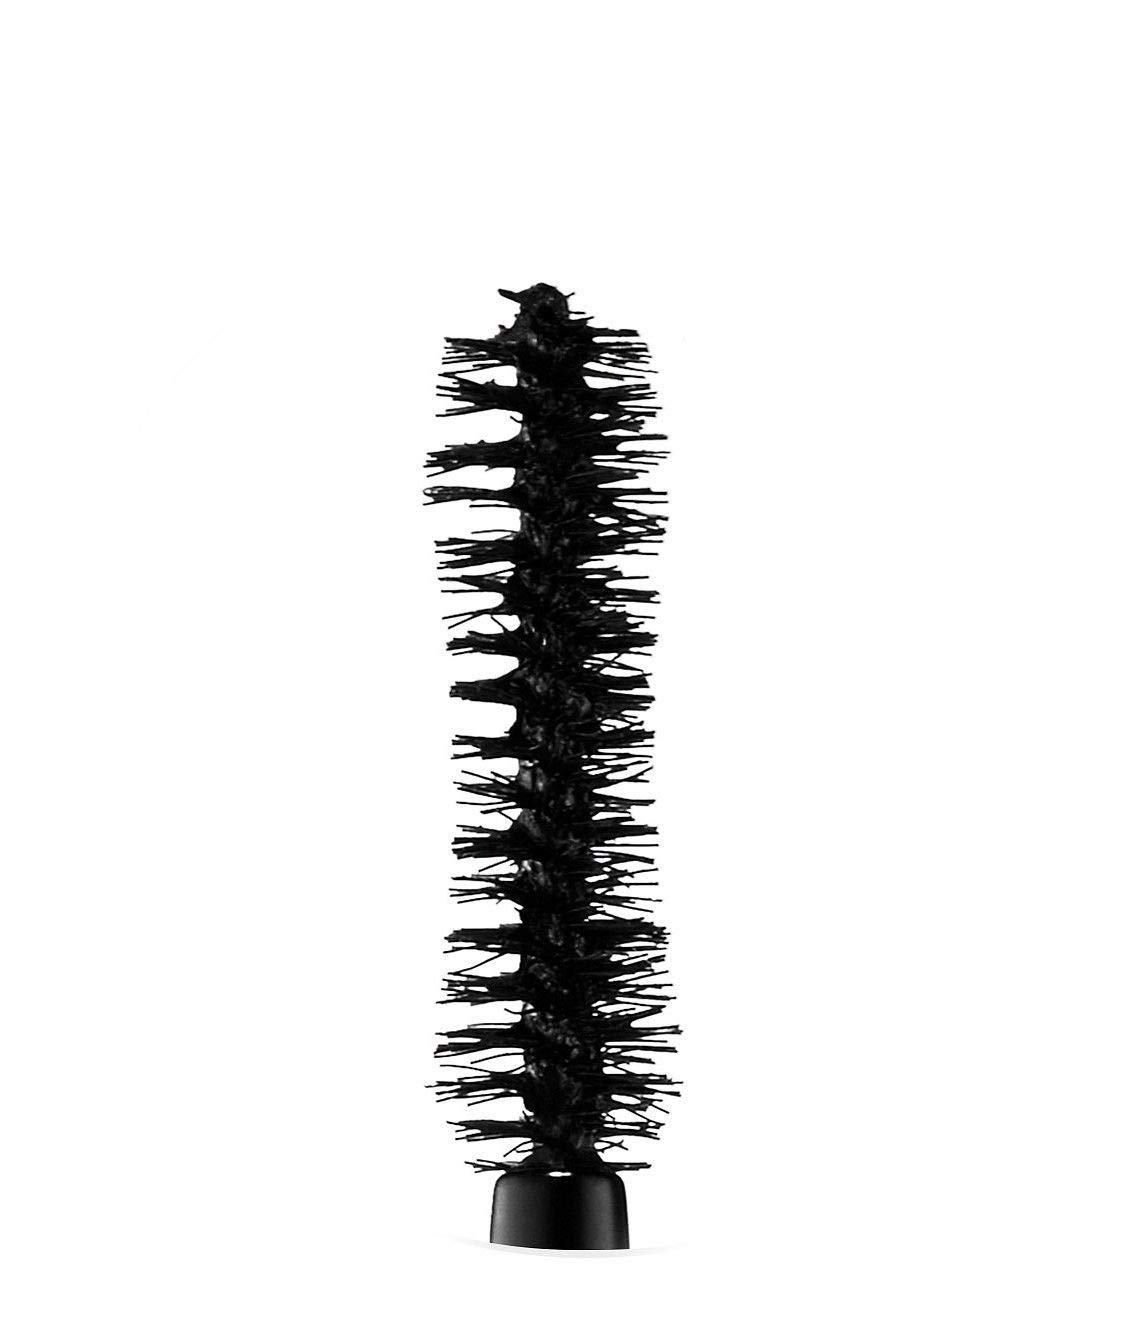 e2f67a67c29 Amazon.com : Sephora Beauty Insider Lashcraft Big Volume Mascara, 0.44 oz /  12.5 g : Beauty